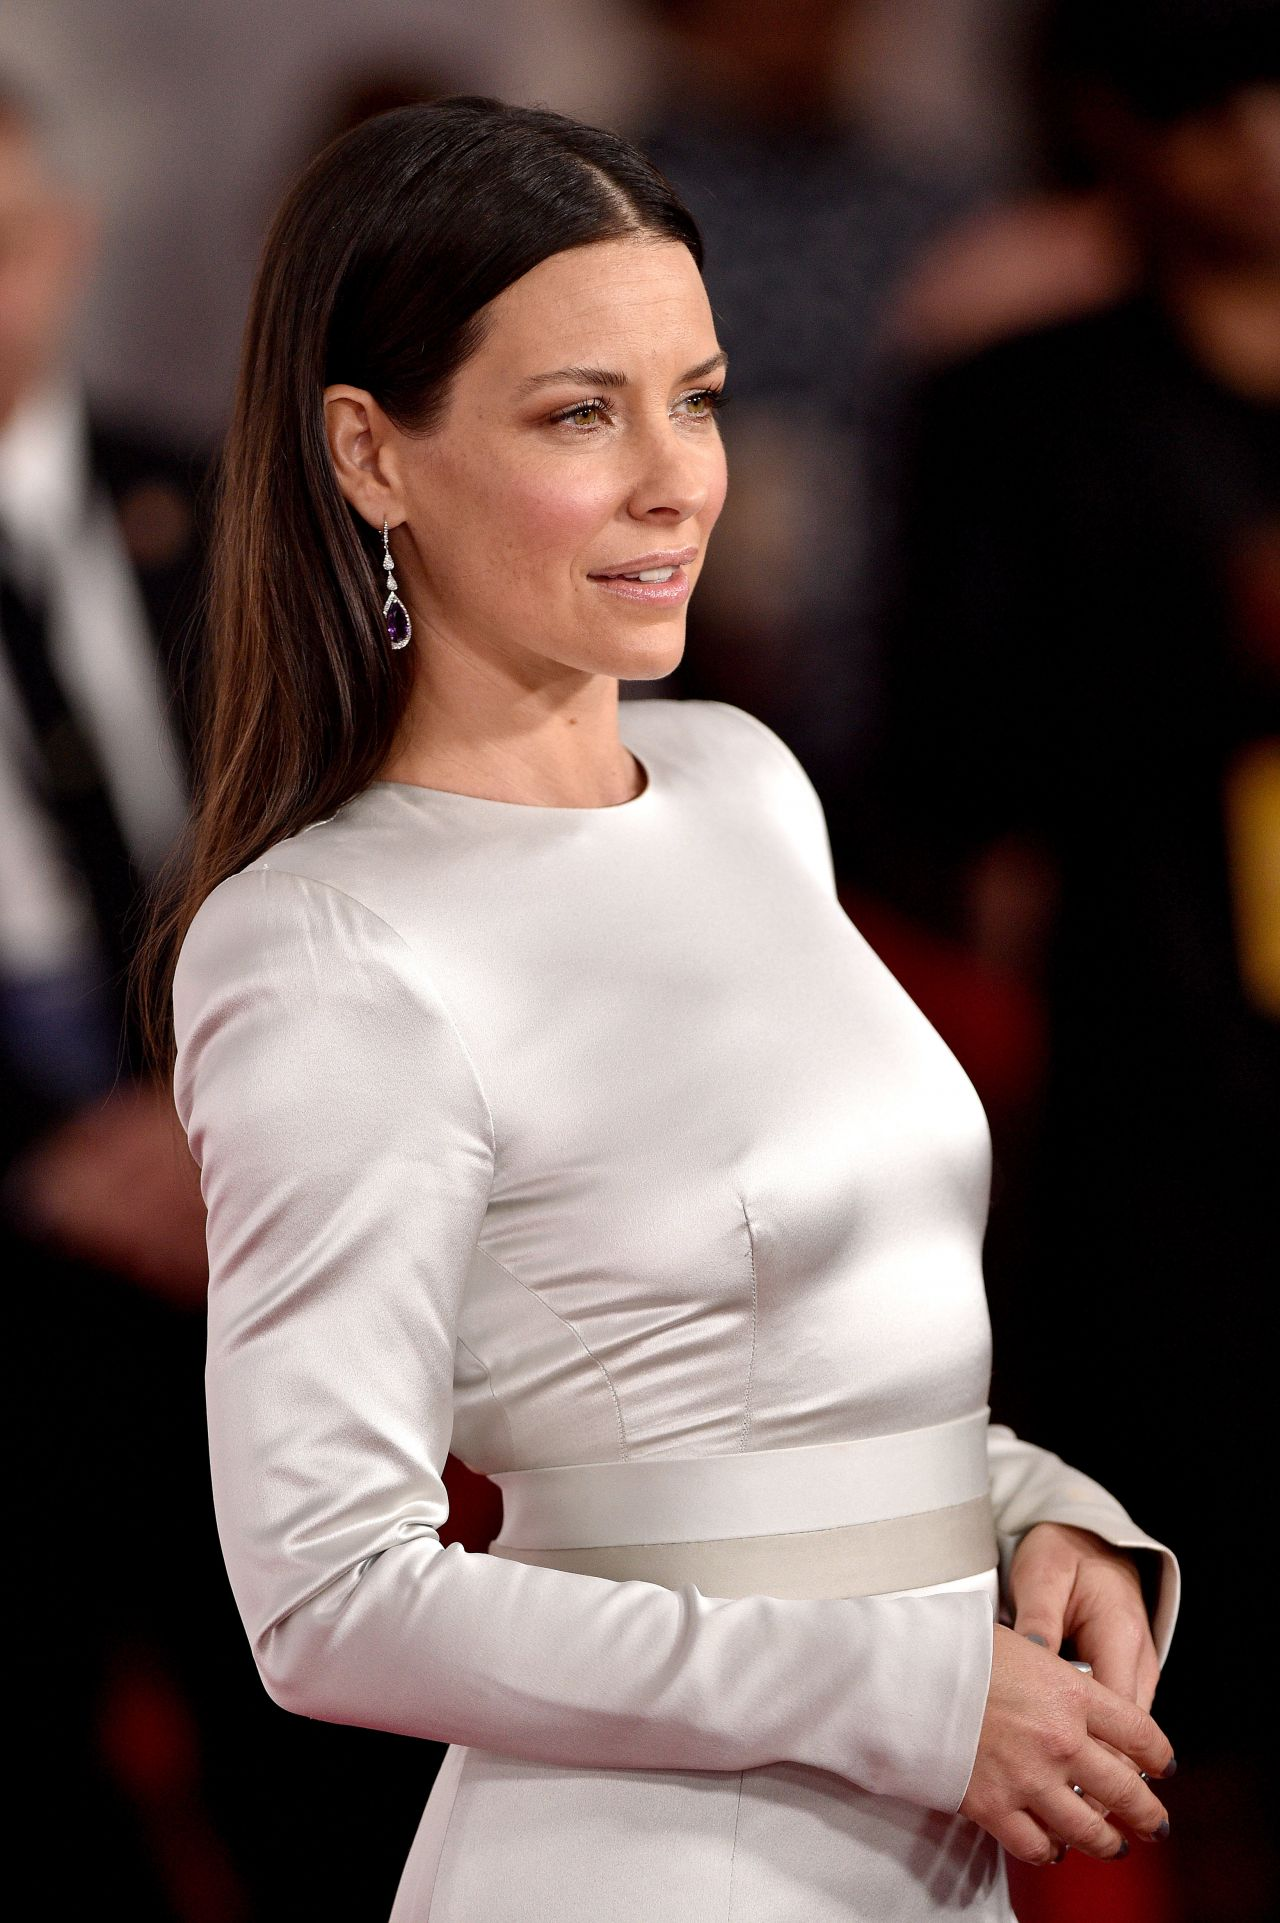 https://celebmafia.com/wp-content/uploads/2018/06/evangeline-lilly-ant-man-and-the-wasp-premiere-in-la-5.jpg